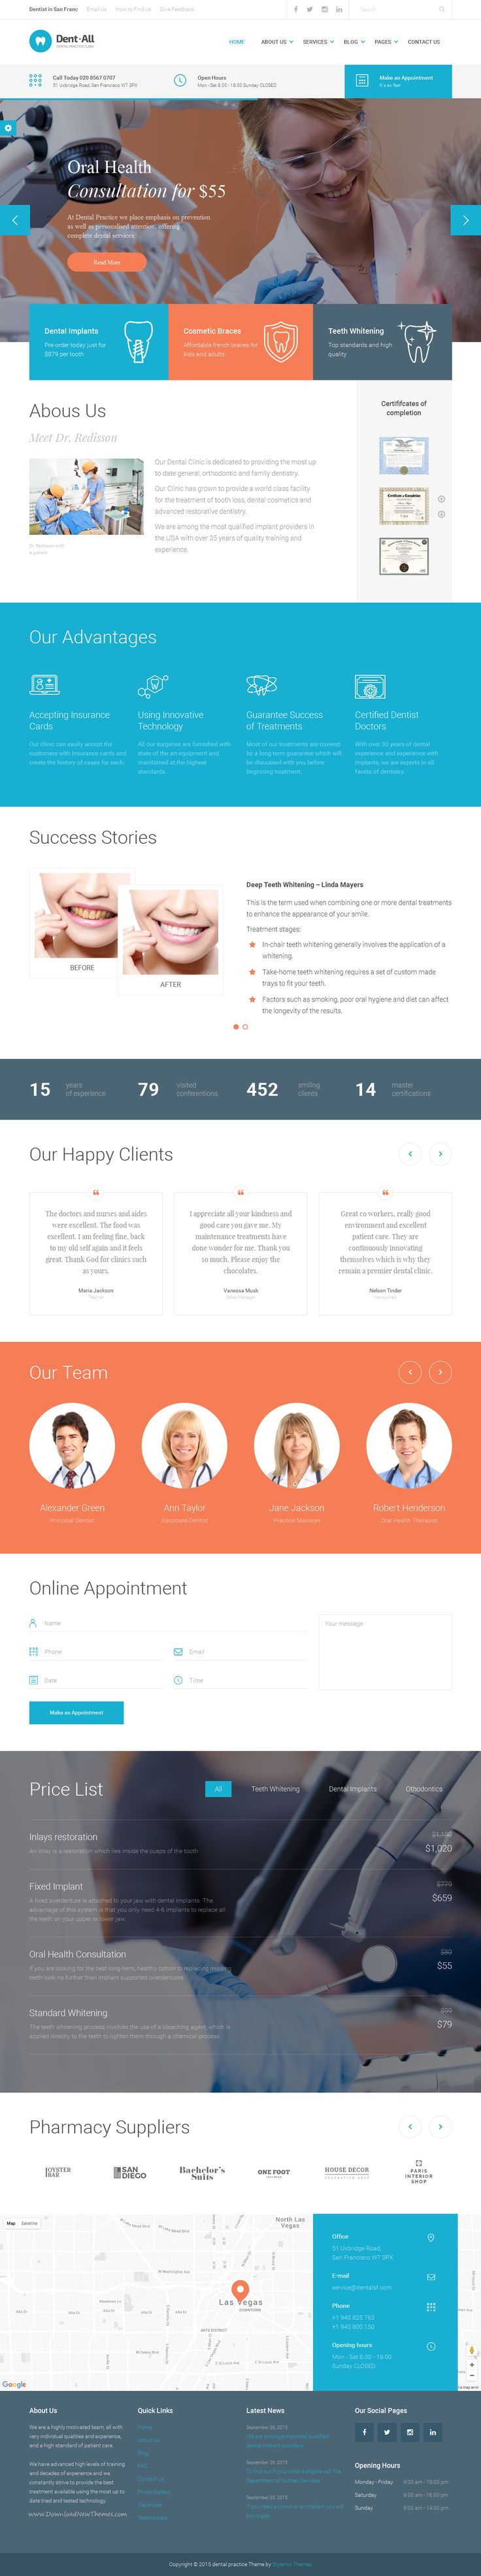 Dent-All is the only WordPress theme you need for Dental practice business. Dent-All has everything You need for a successful #website of your clinic, hospital or for a personal #dentist' website.